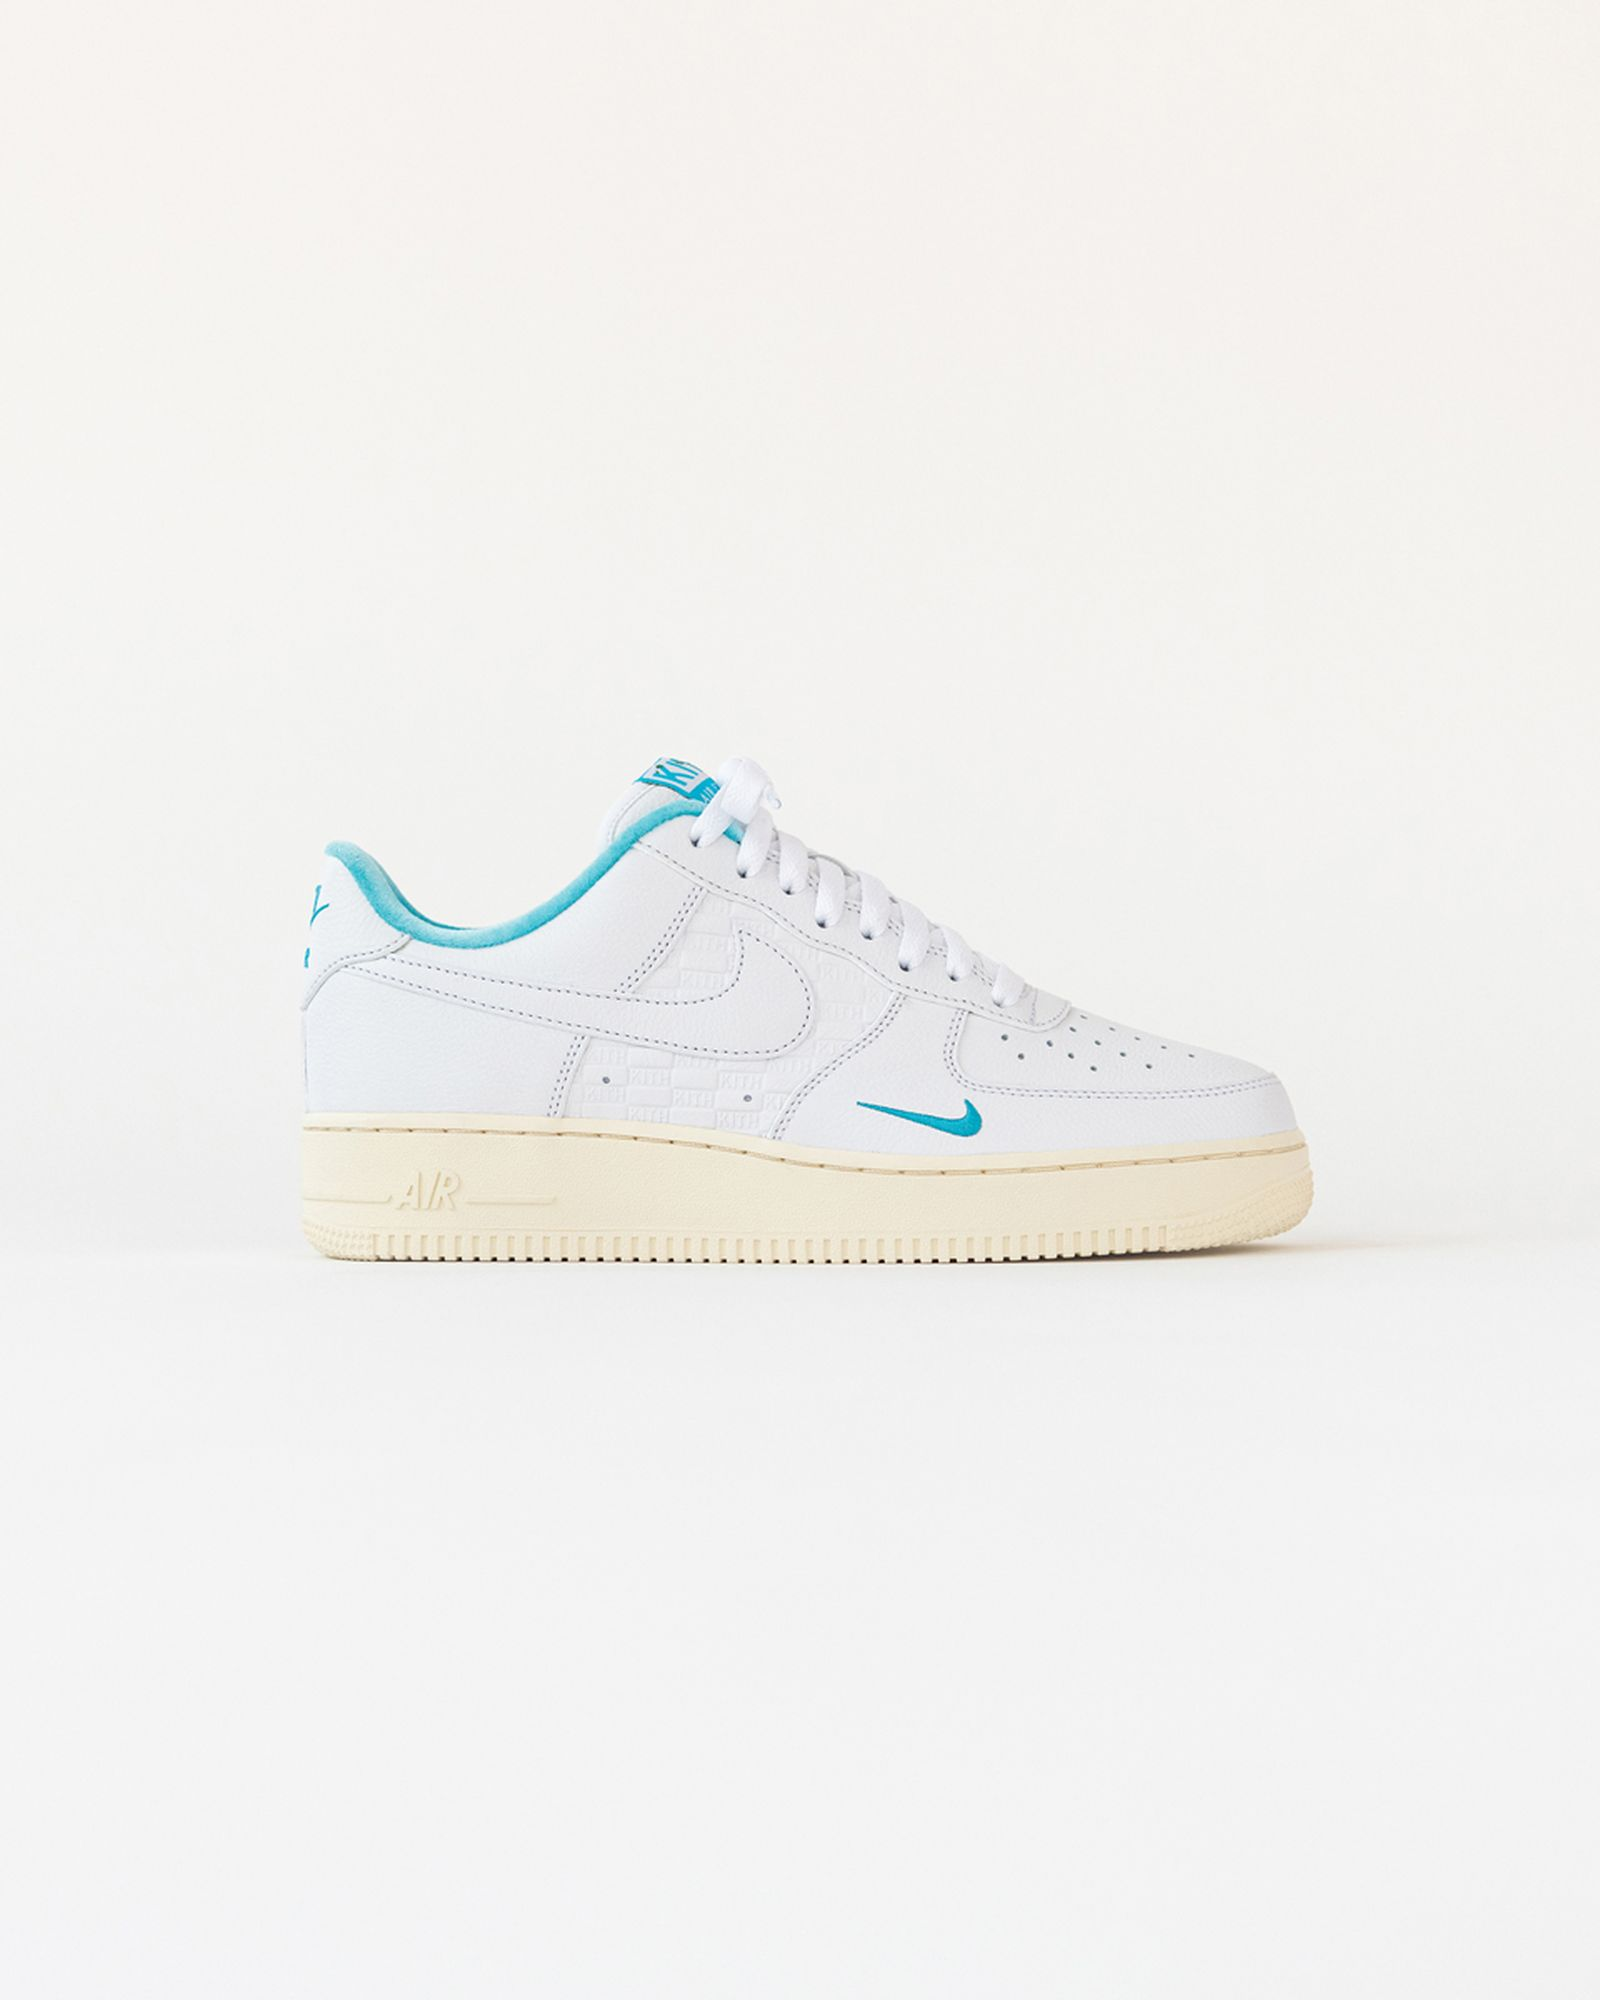 kith nike air force 1 hawaii collaboration exclusive sneaker release date info price